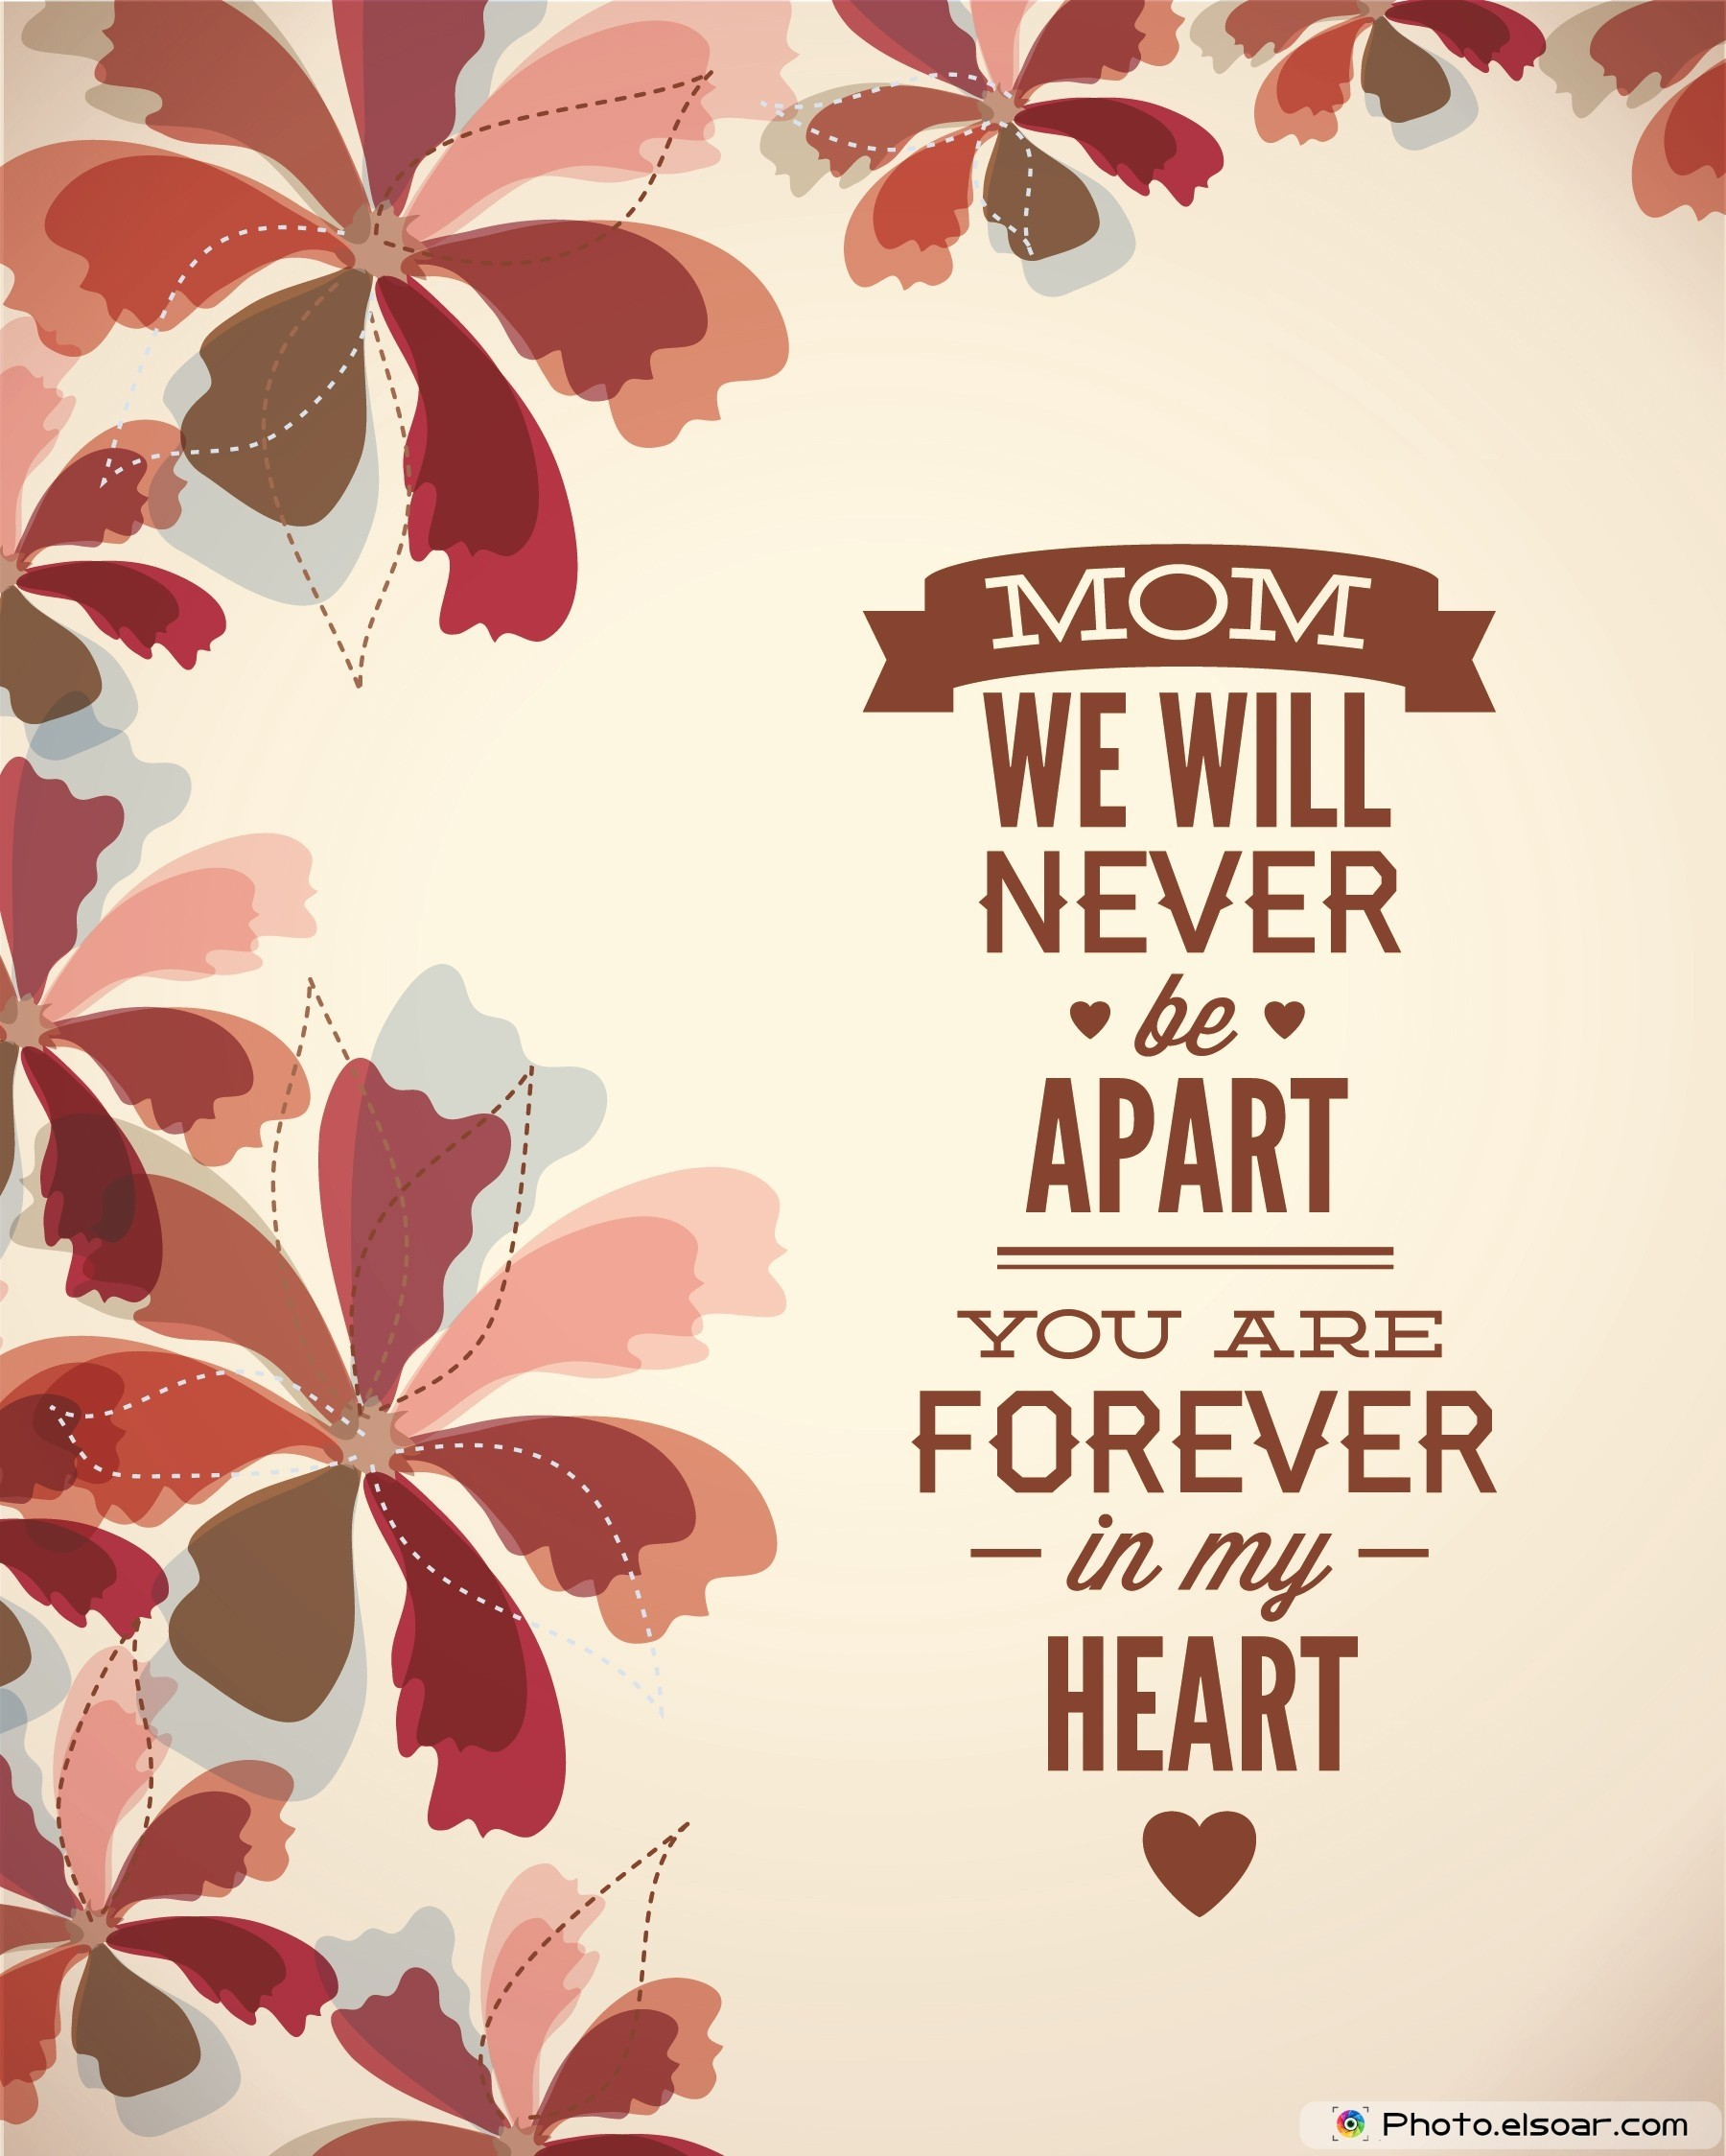 Mom We Will Never Be Apart. You Are Forever In My Heart